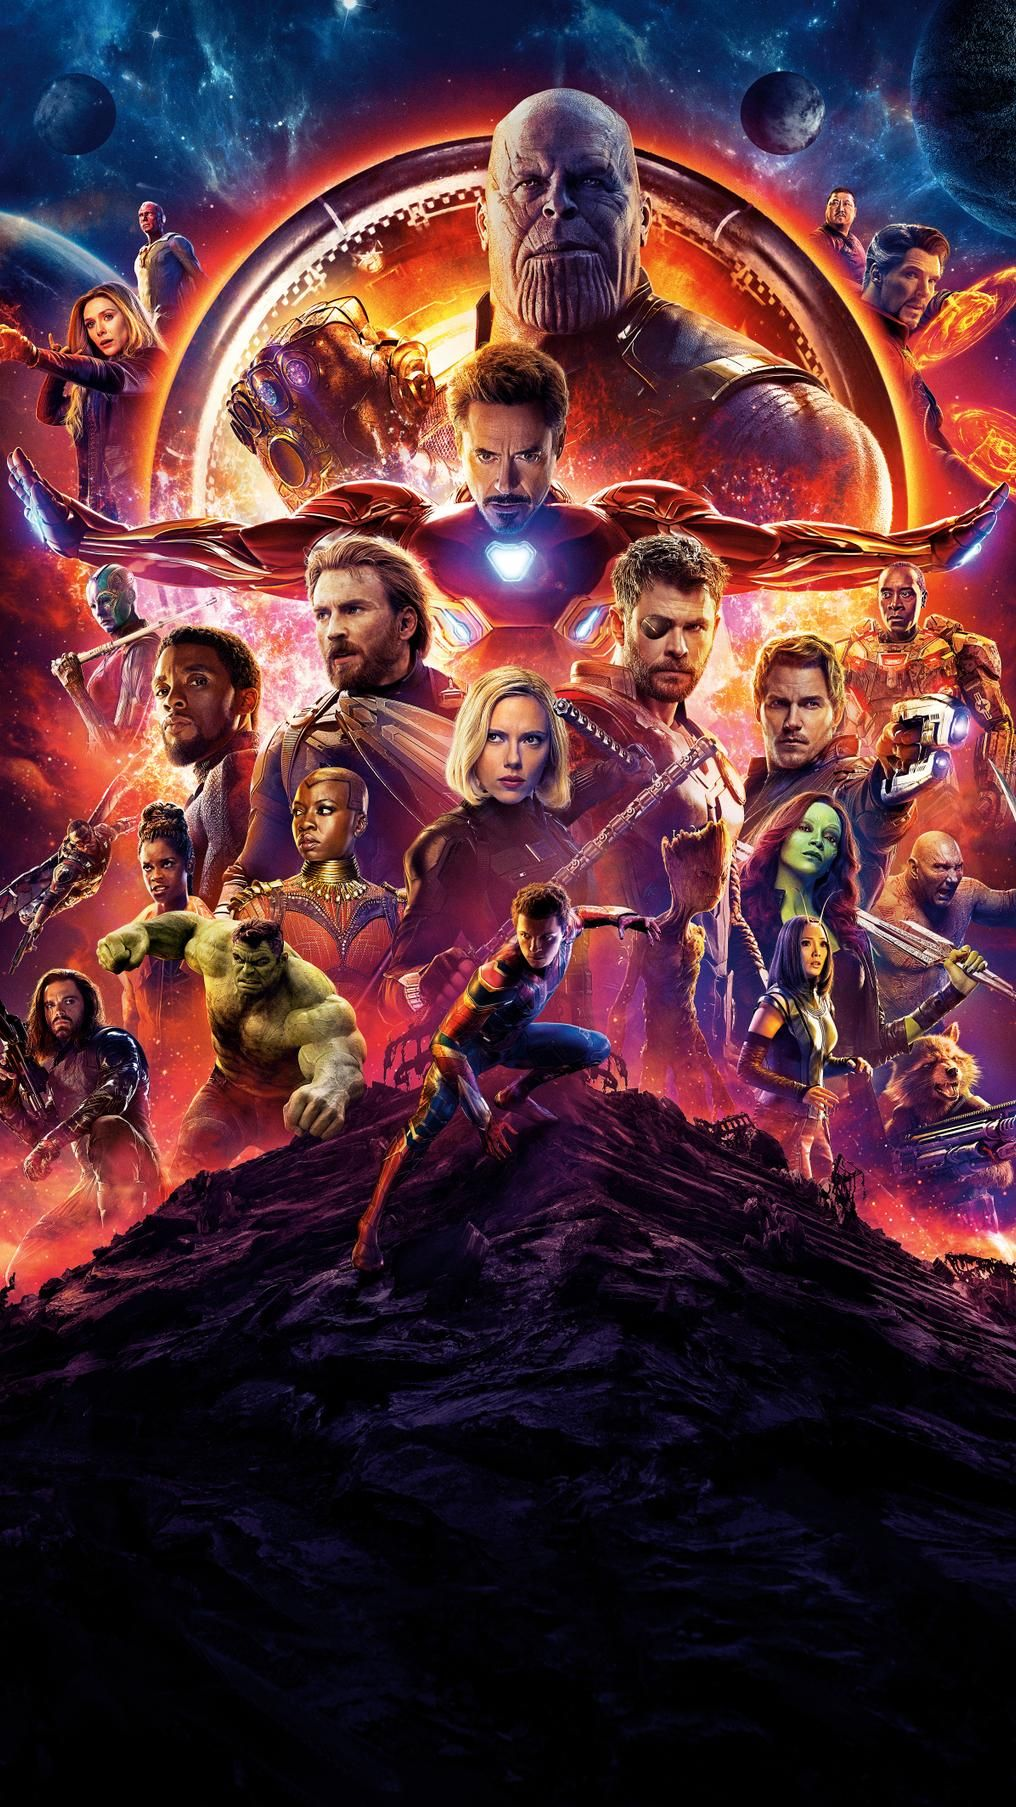 Moviemania Textless High Resolution Movie Wallpapers Avengers Movies Marvel Cinematic Avengers Infinity War